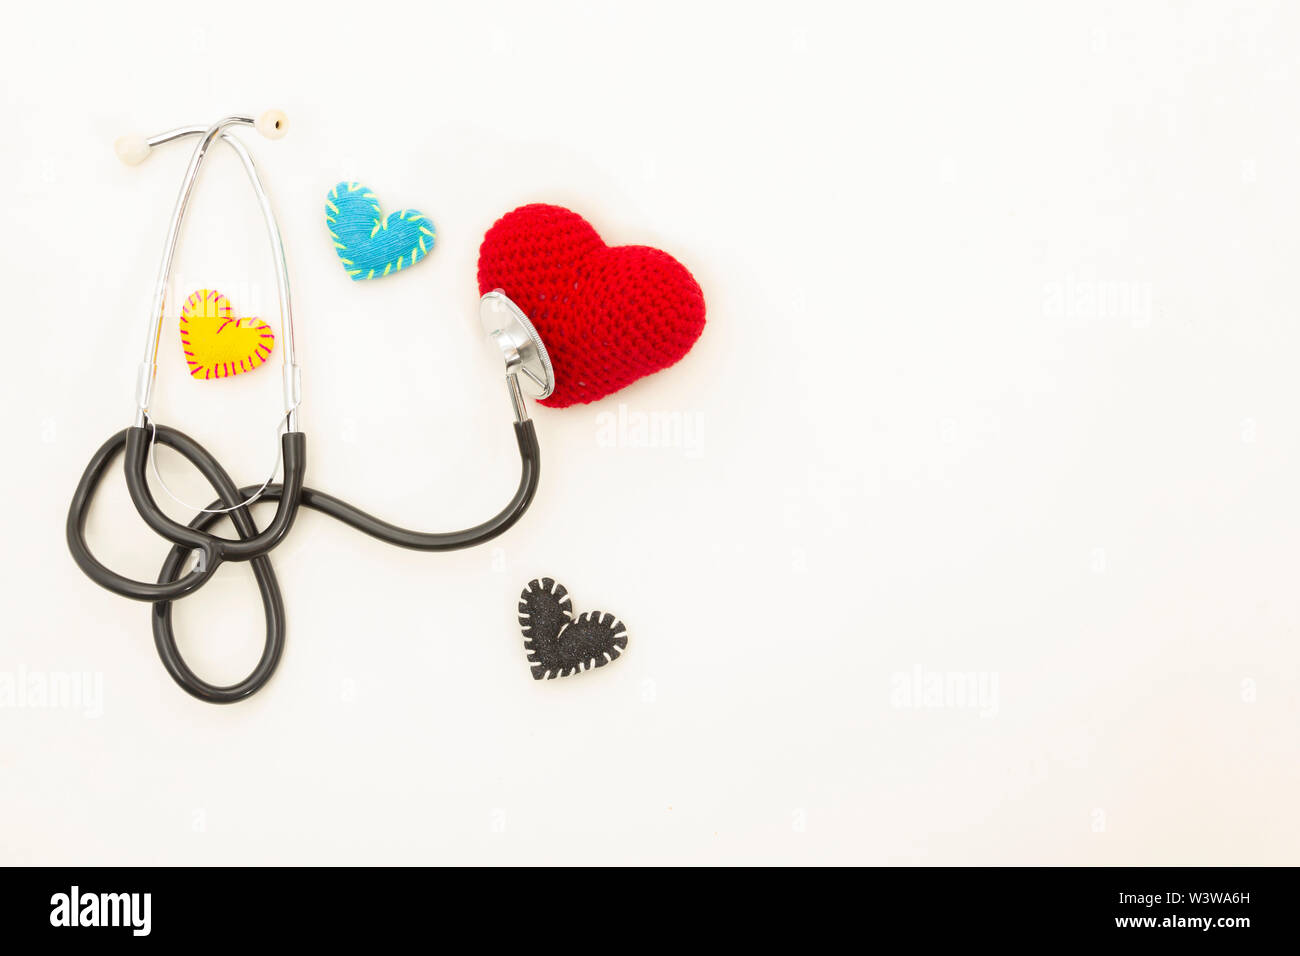 Heart health and prevention concept. Stethoscope and red heart of crochet on white isolated background with space for text. Stock Photo